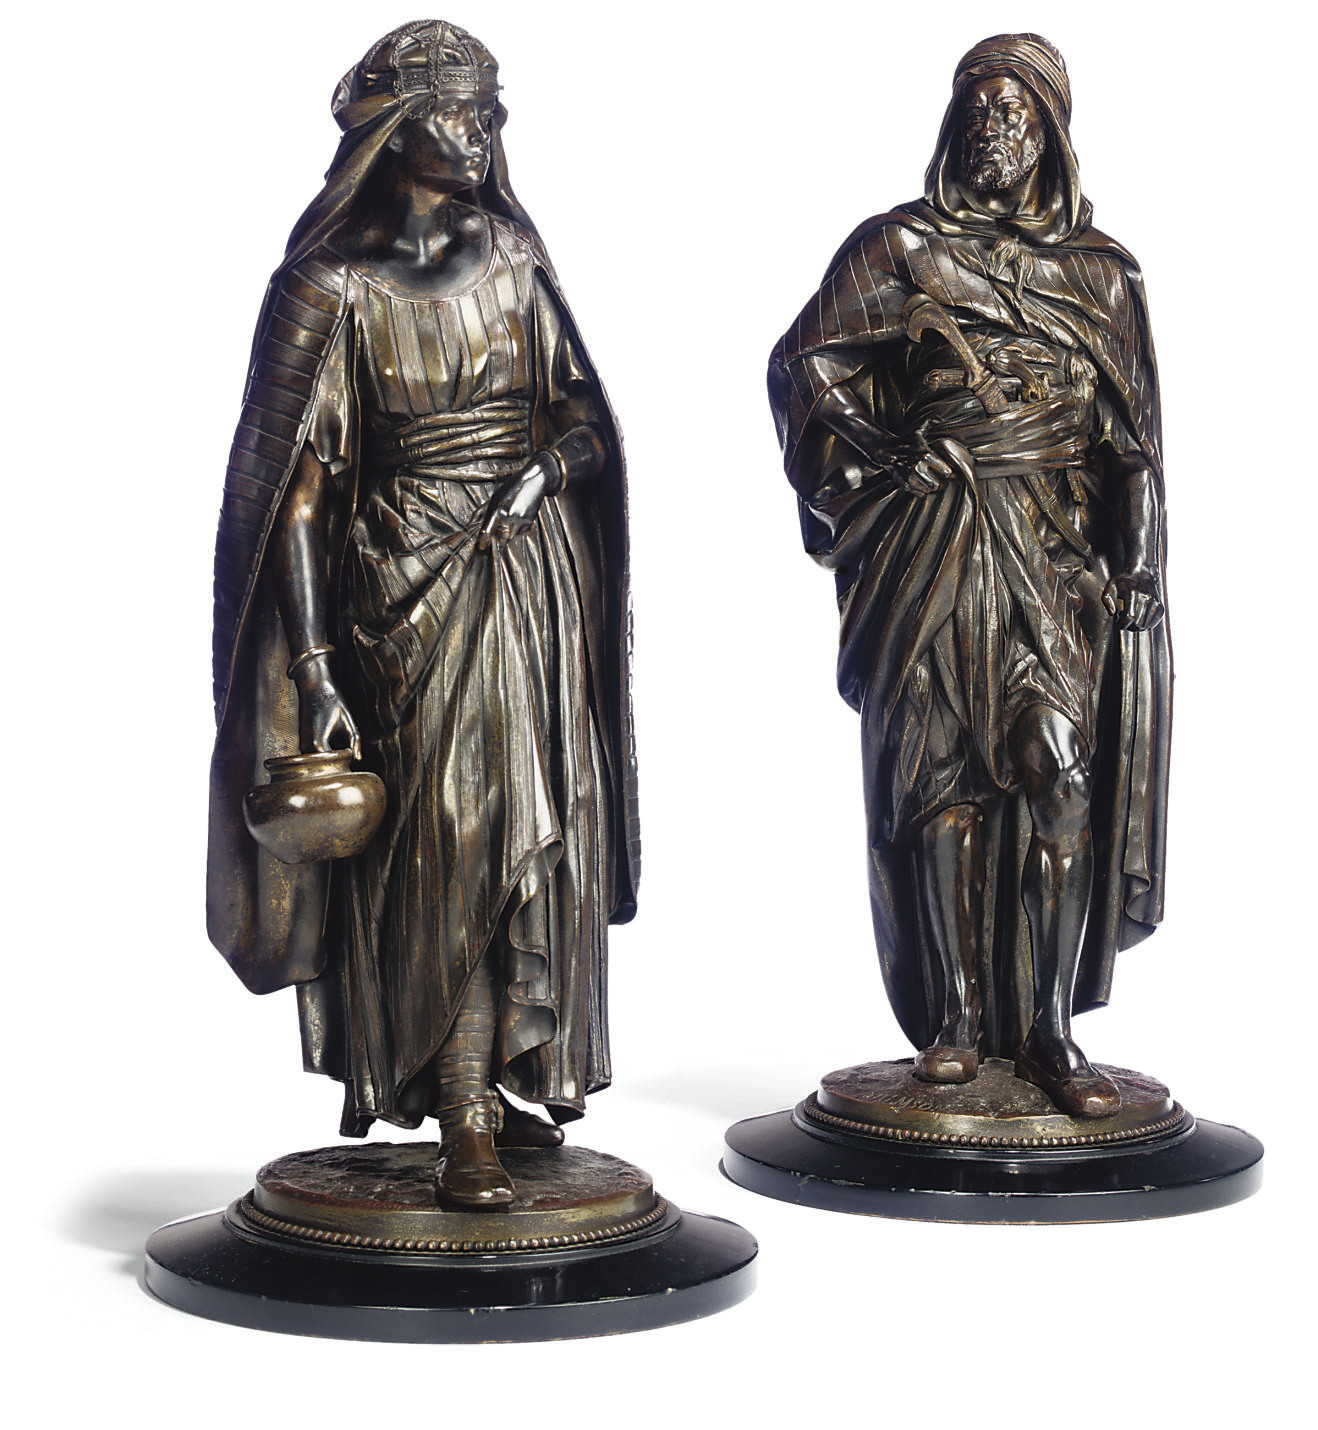 A PAIR OF FRENCH BRONZE FIGURES ENTITLED 'LA PORTEUSE' AND 'LE GUERRIER ARABE'